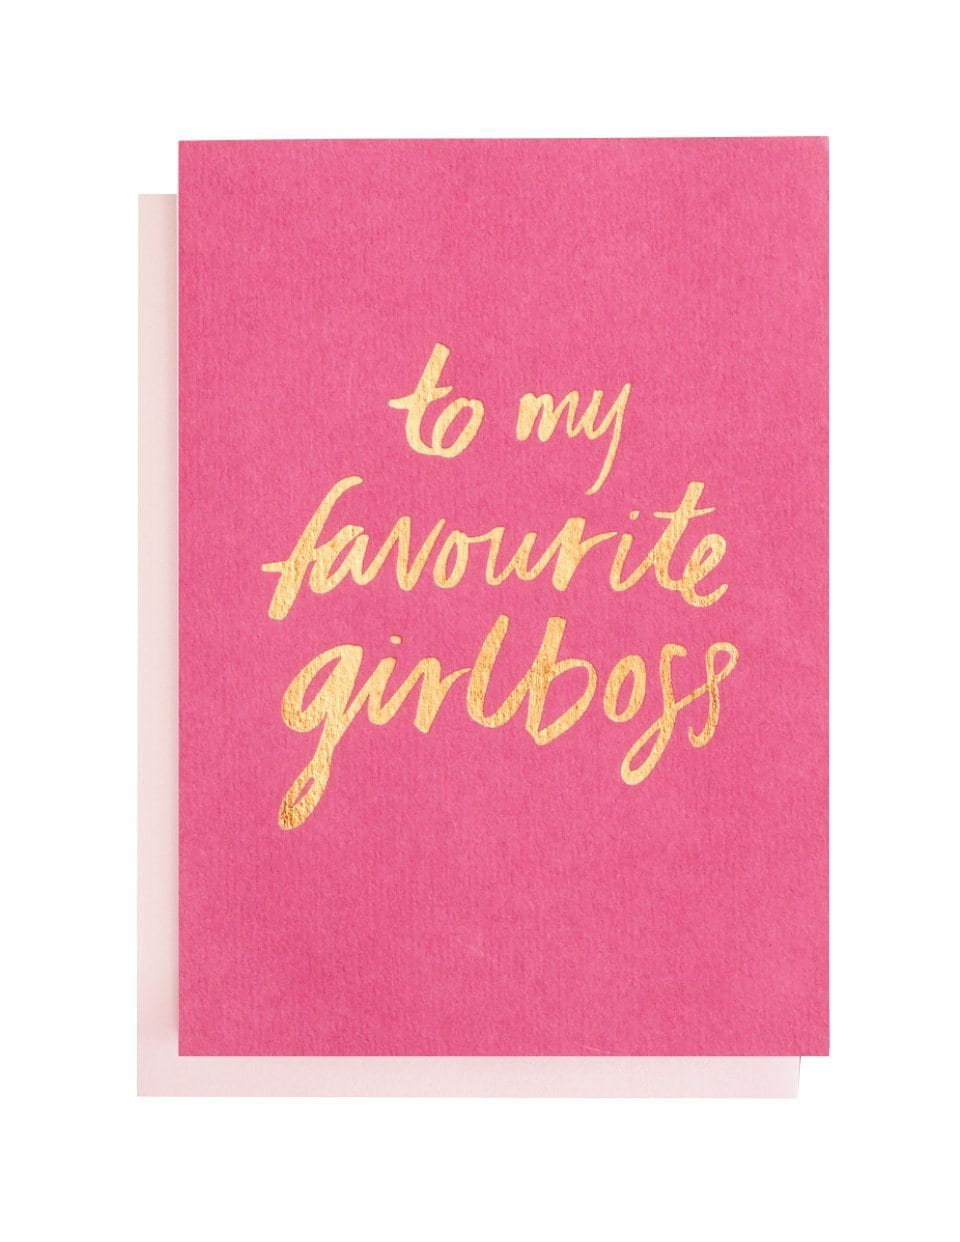 To My Favourite Girlboss foiled greeting card